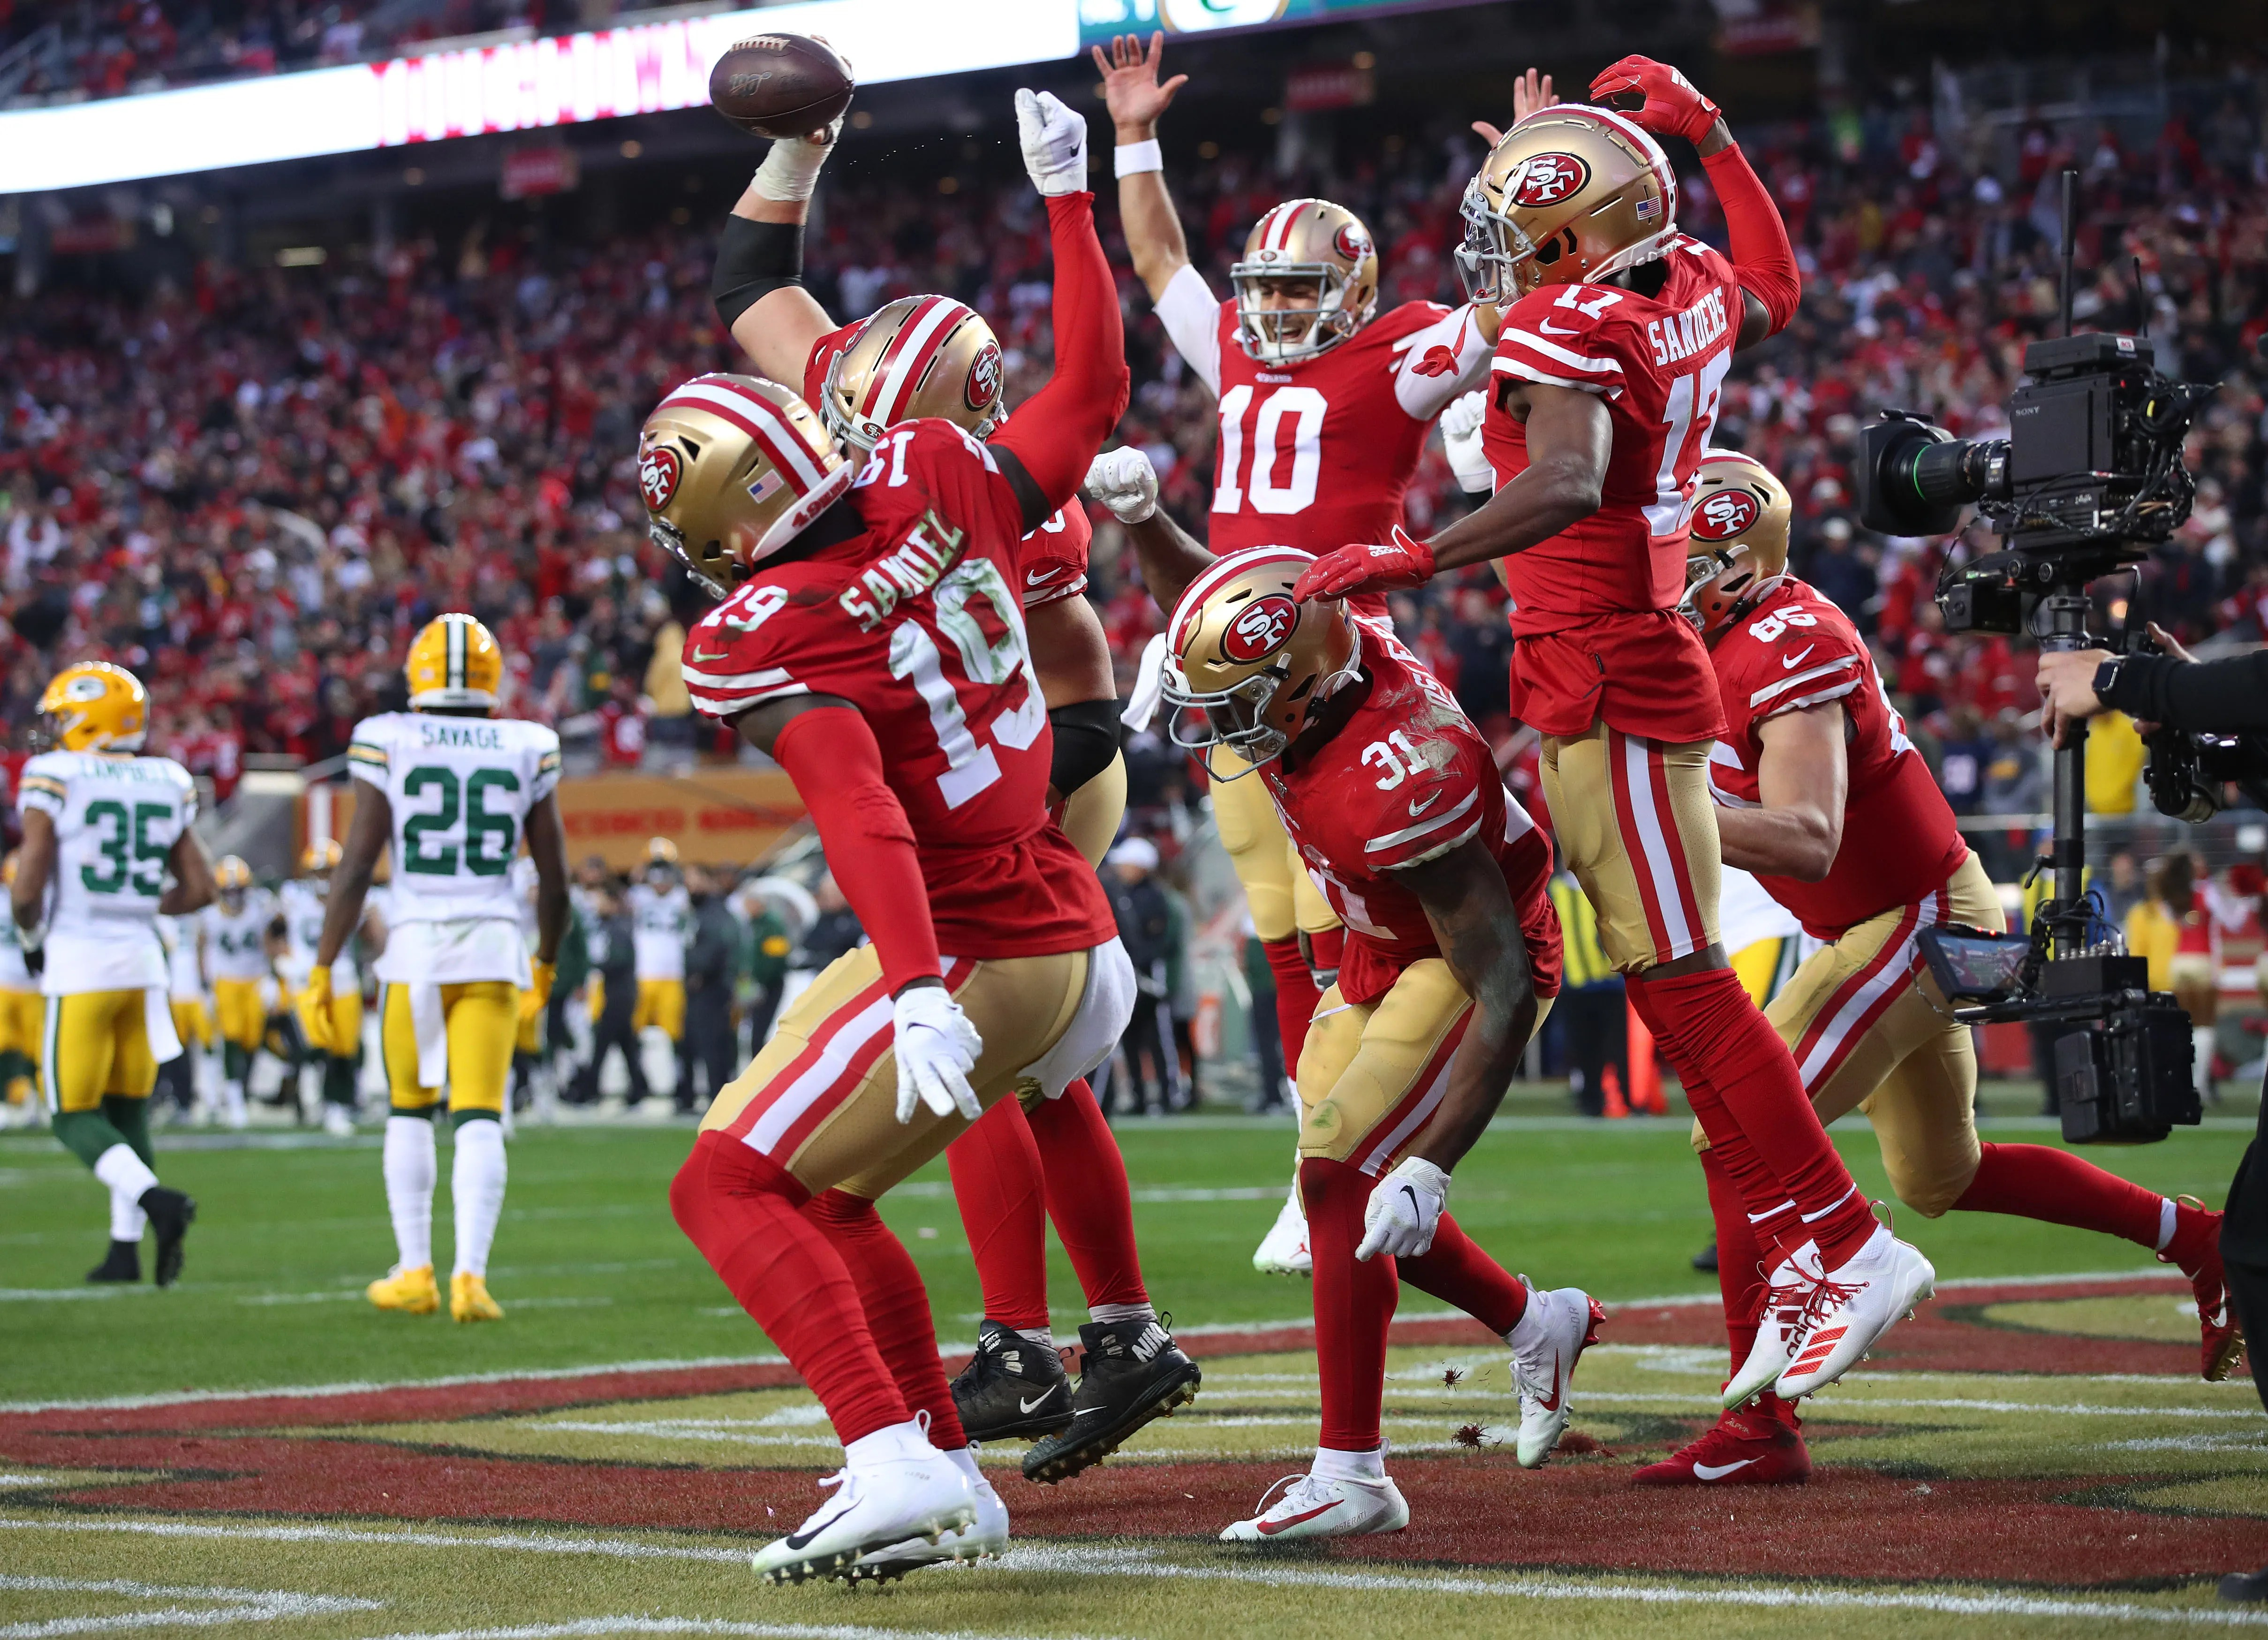 49ers Smash Packers In Nfc Championship Game To Reach